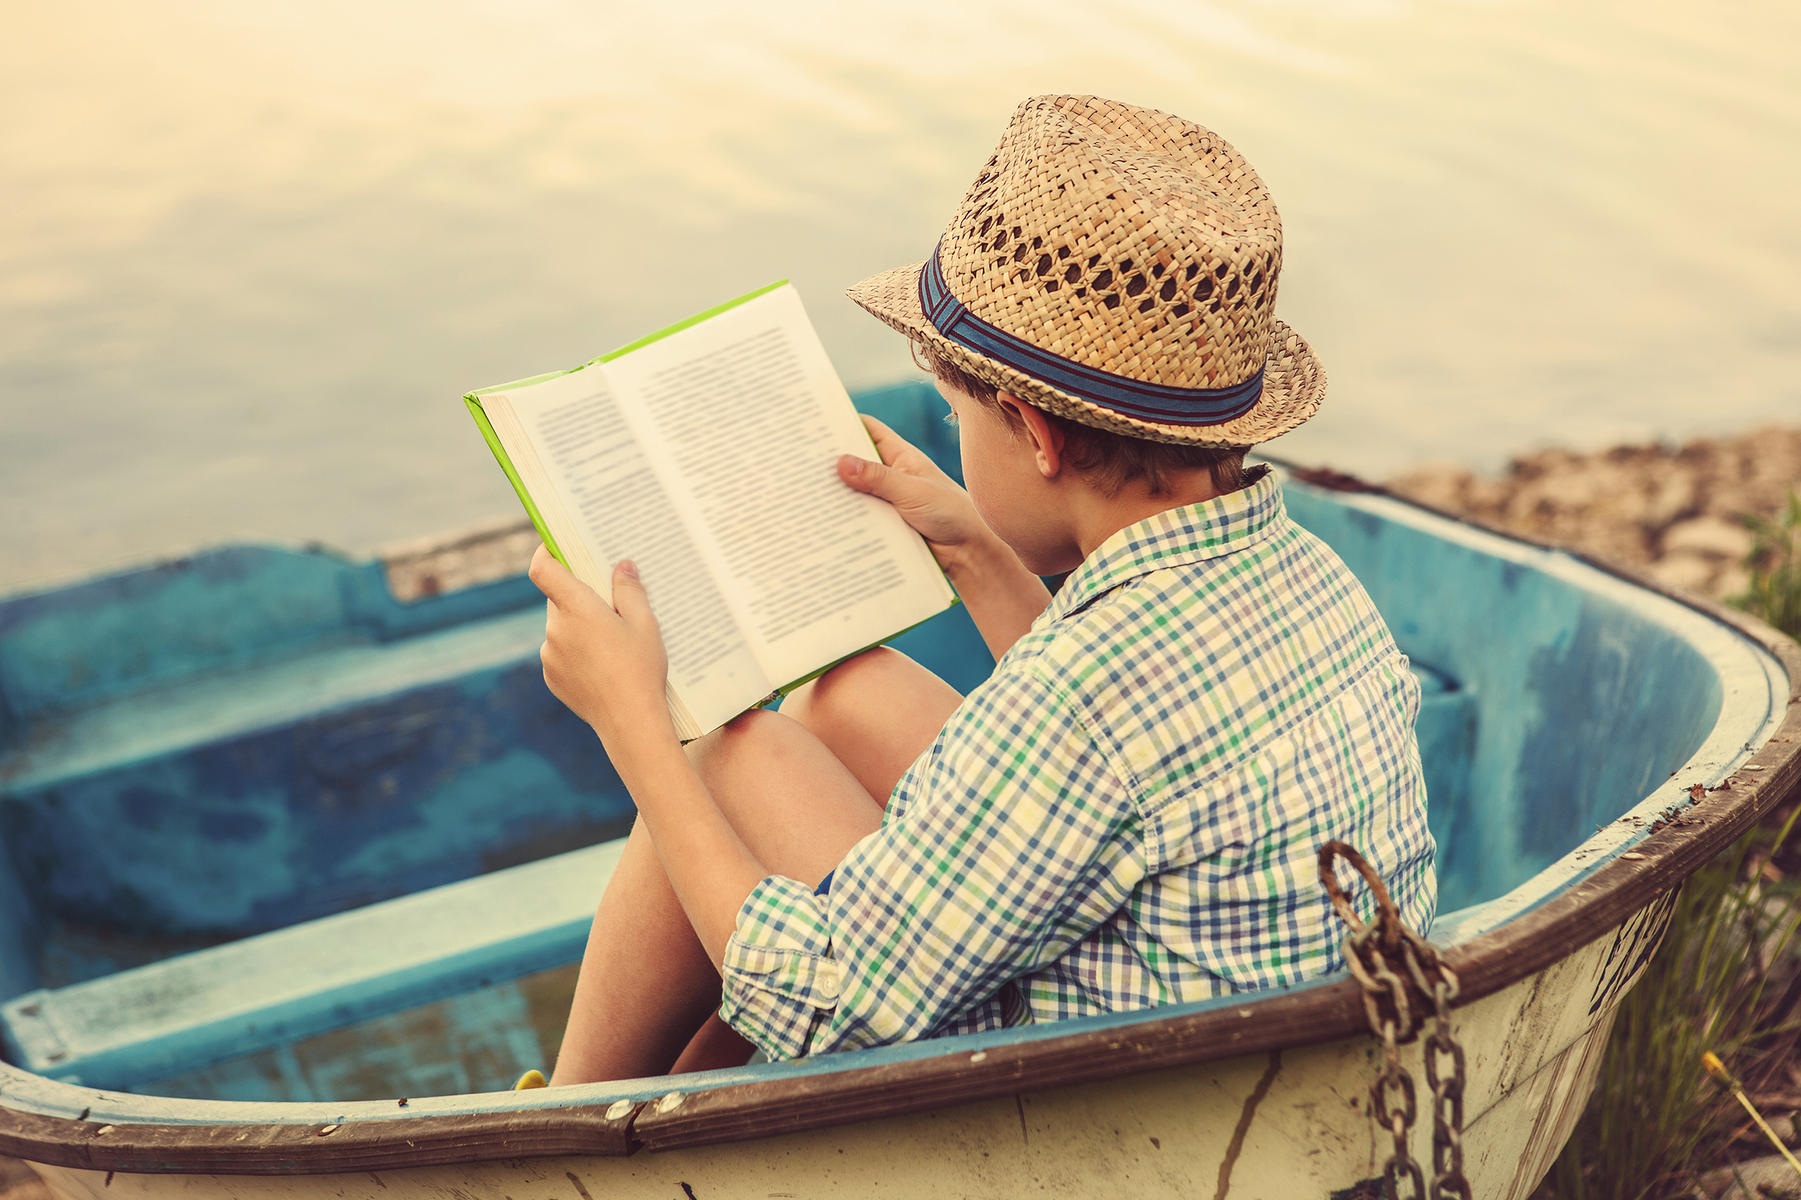 Summer Reading: Boy Reading a Book in a Boat